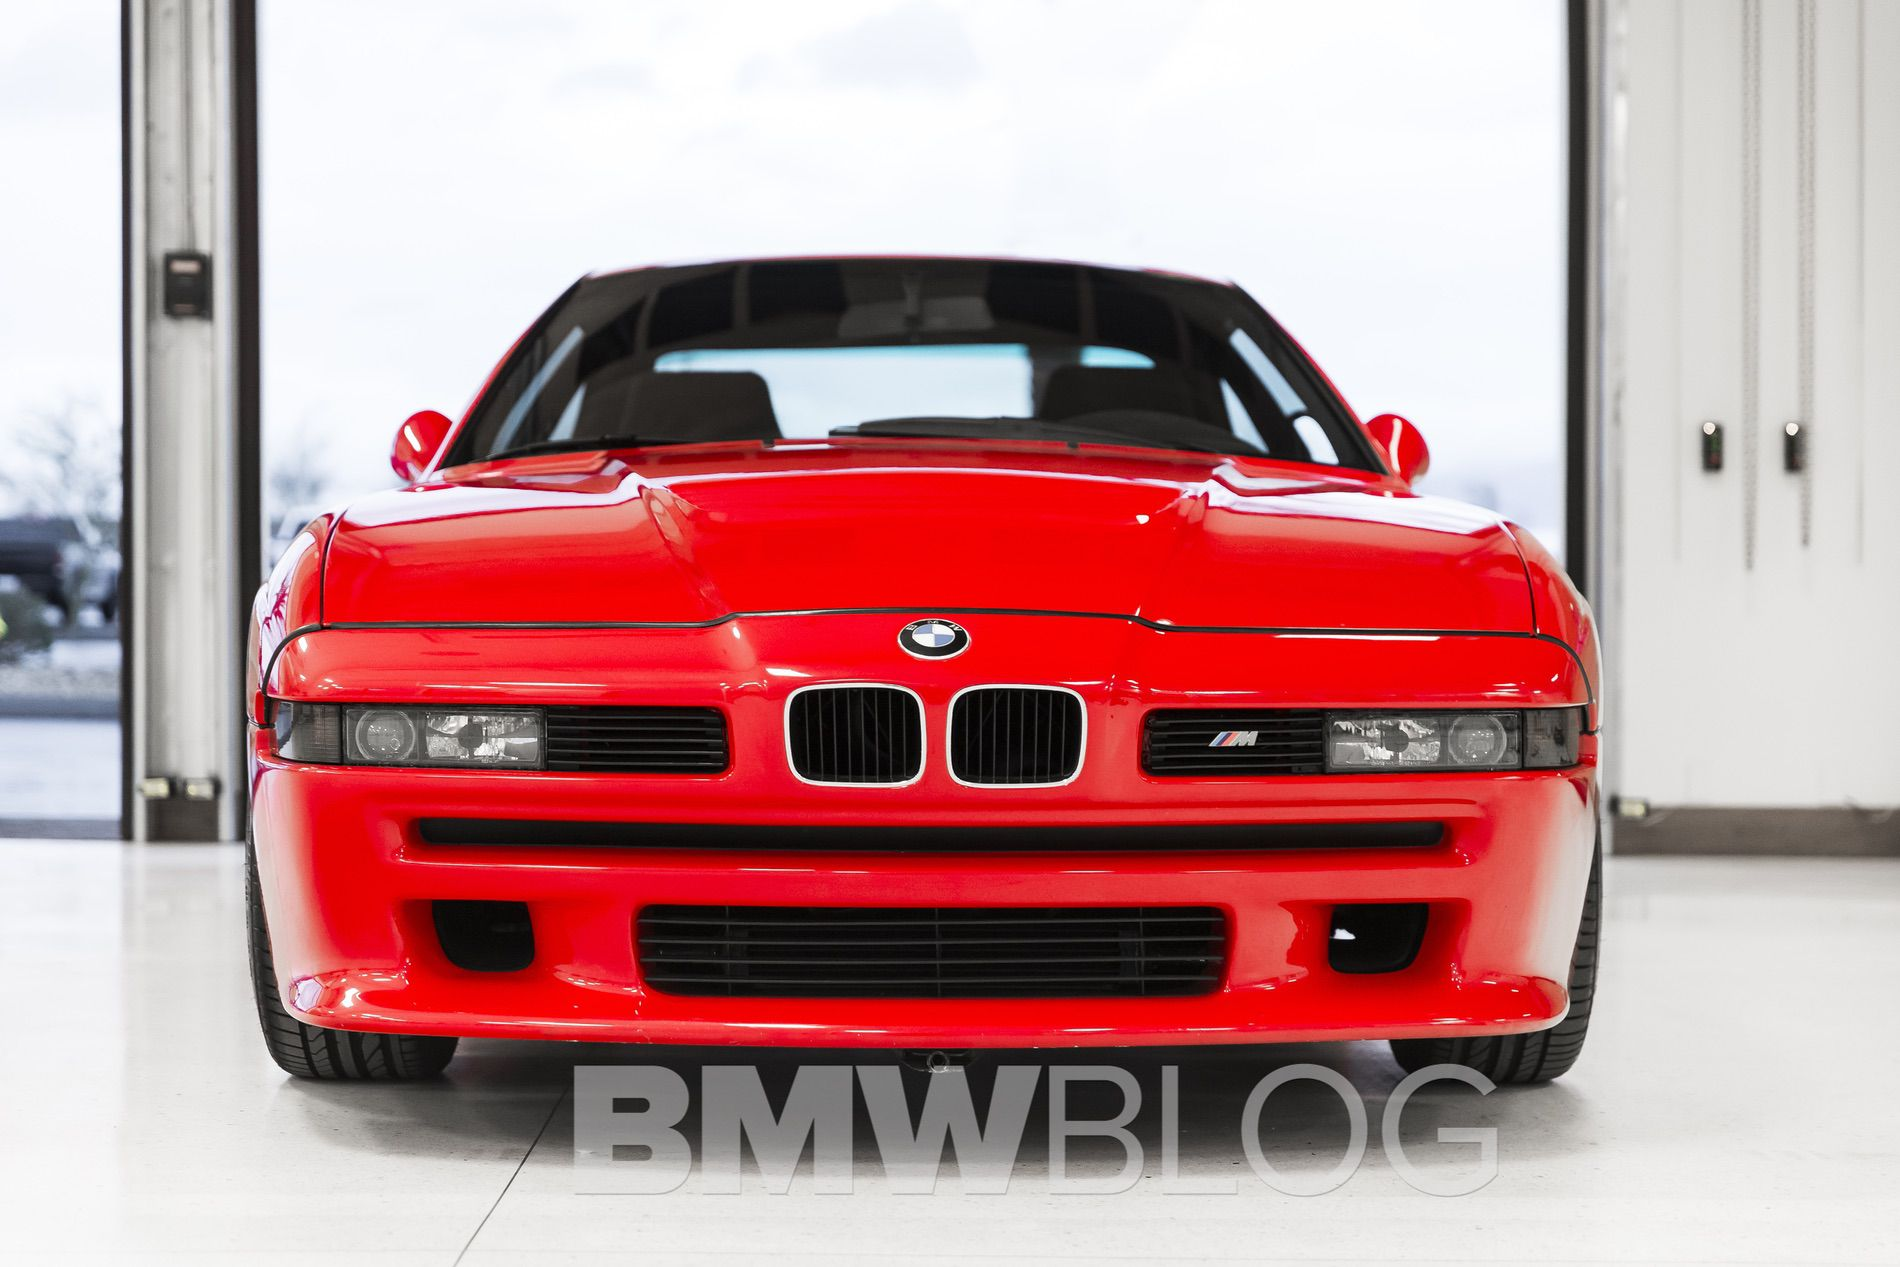 Here is the stunning BMW E31 M8 Prototype!